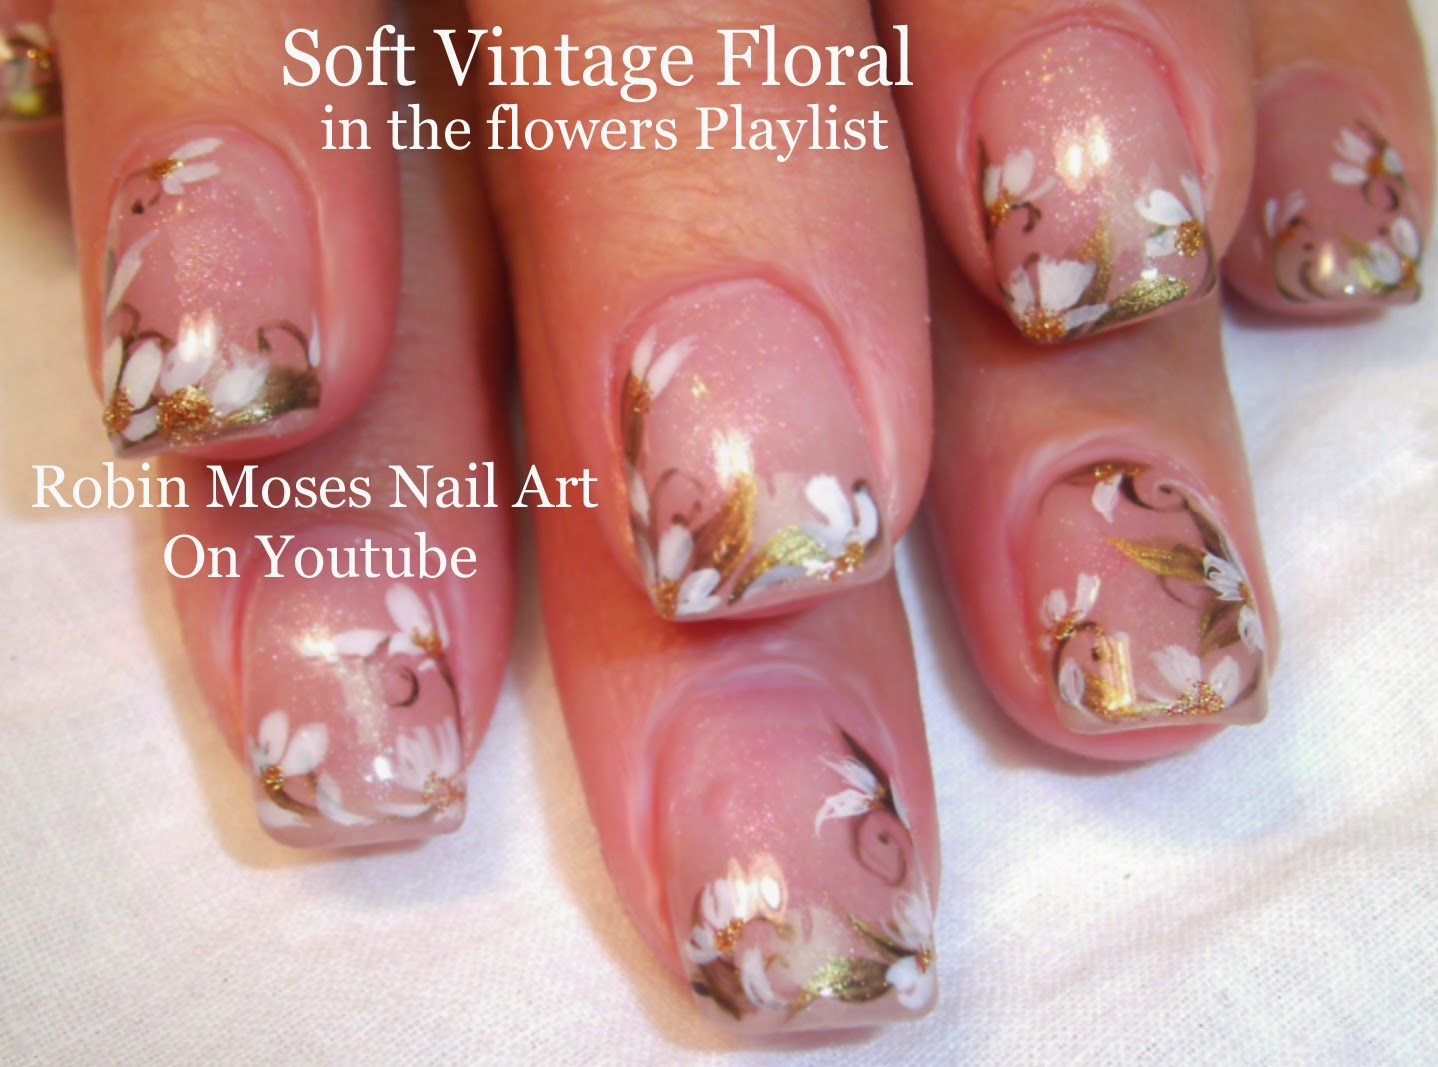 Robin moses nail art soft neutral floral nails prom nail art flower nail art playlist easy nail art tutorials floral nails design ideas for beginners to advanced nail techs prinsesfo Image collections